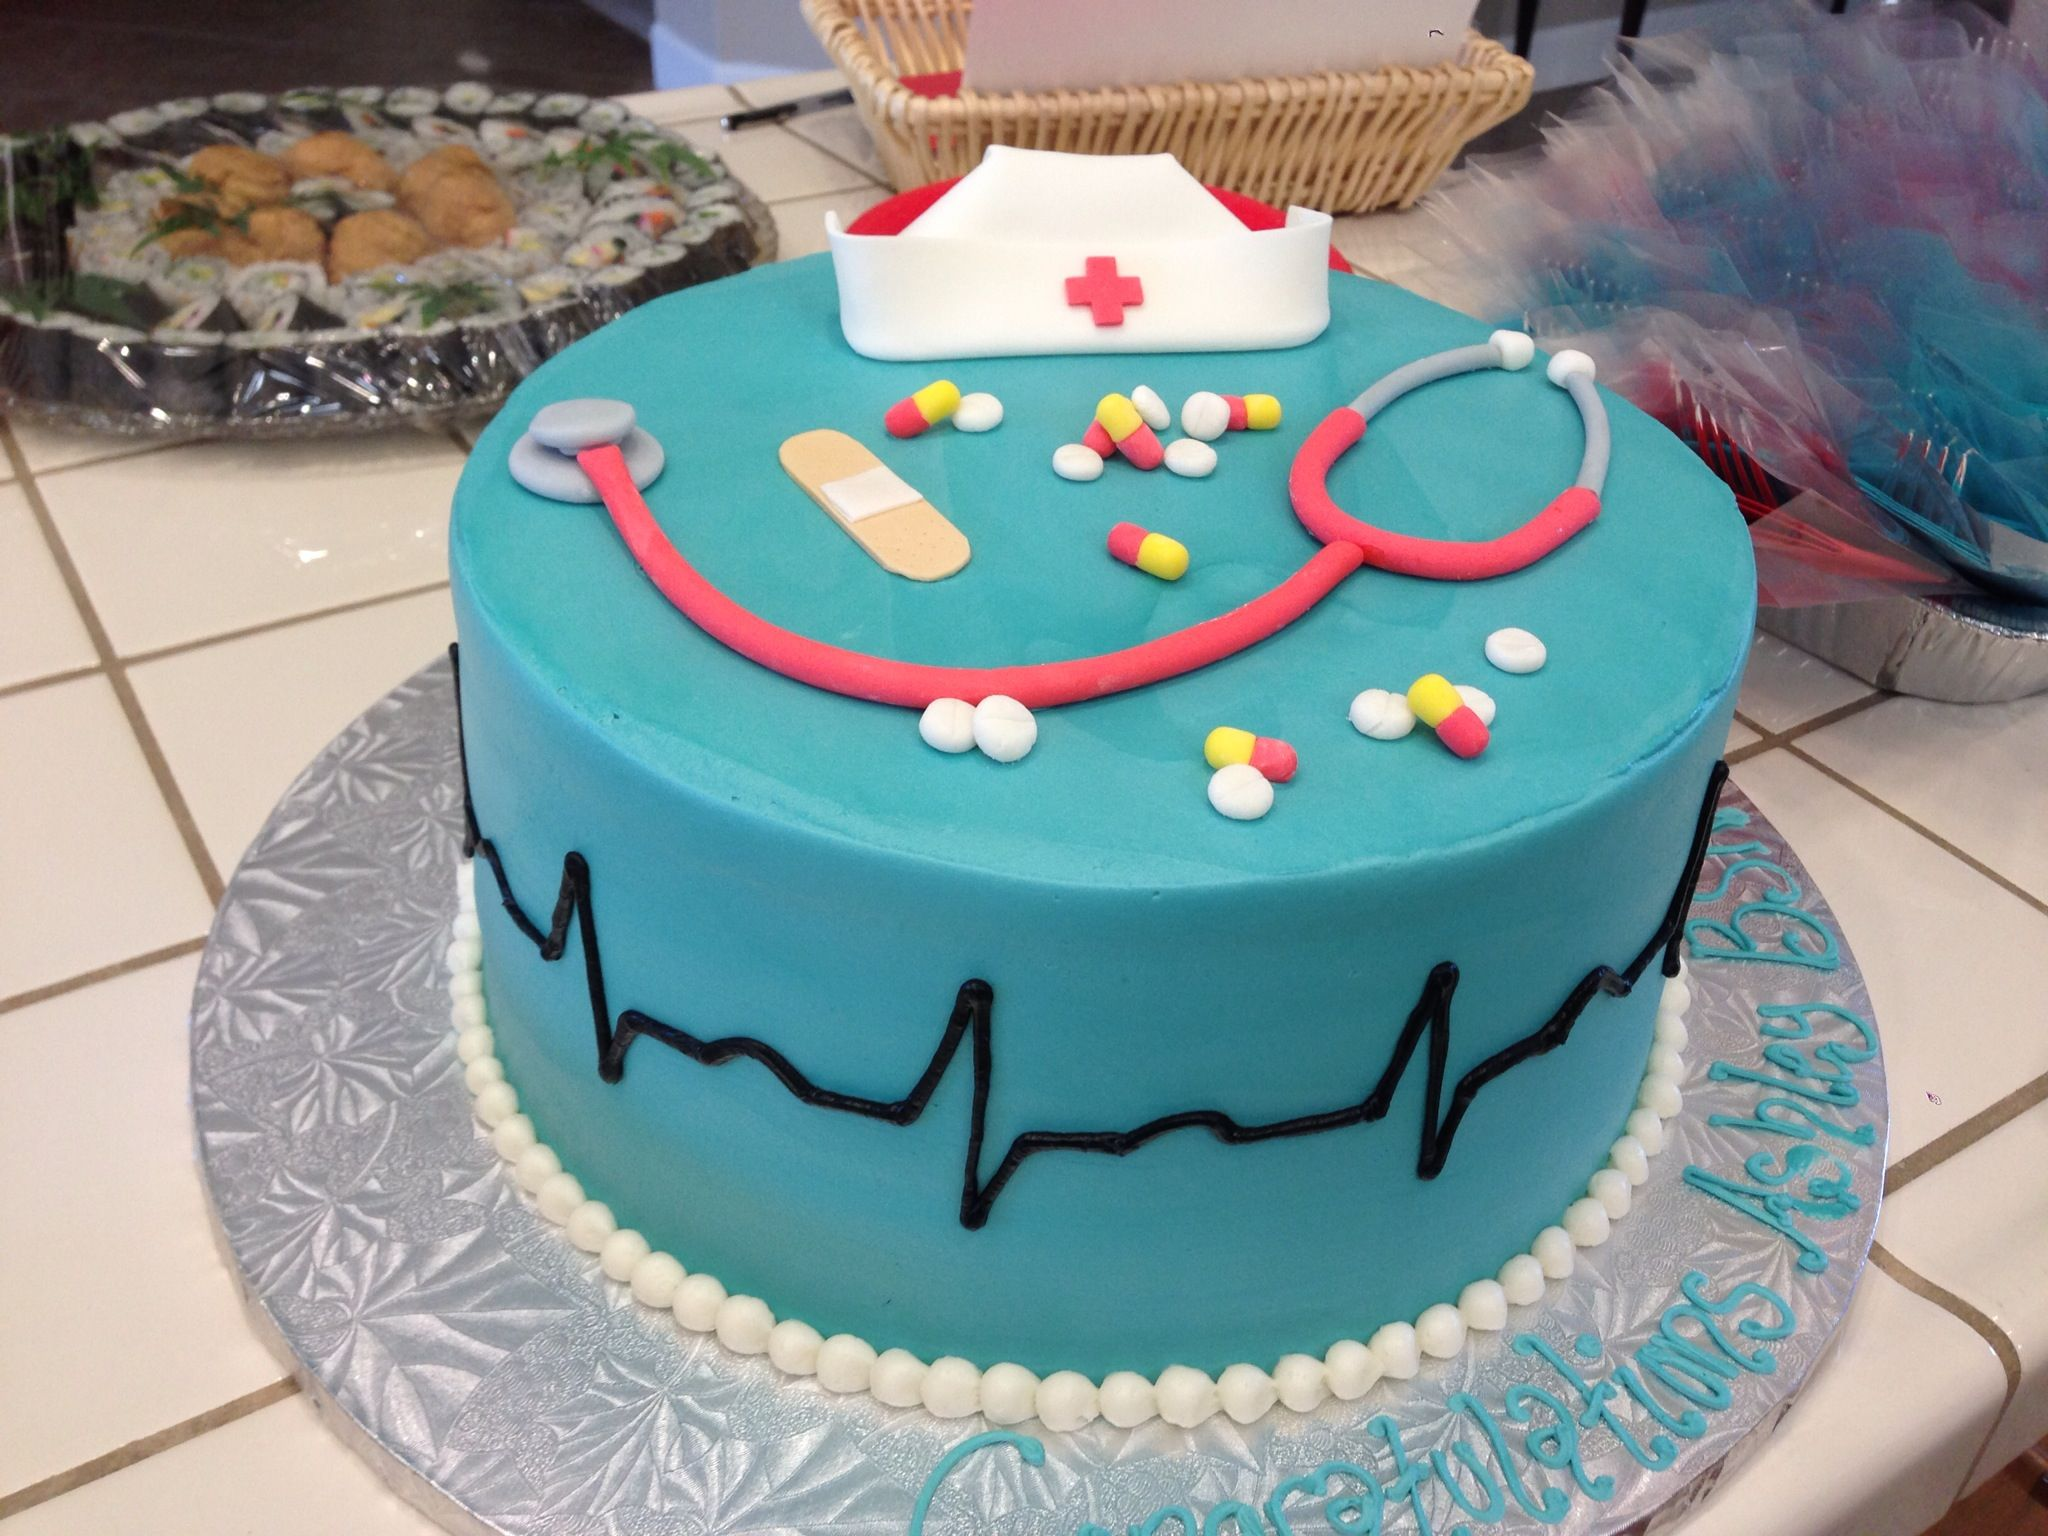 Nursing Schools Near Me >> My Amazing Cake at my Nursing Graduation Party! | cake decorating | Nursing graduation, Nursing ...